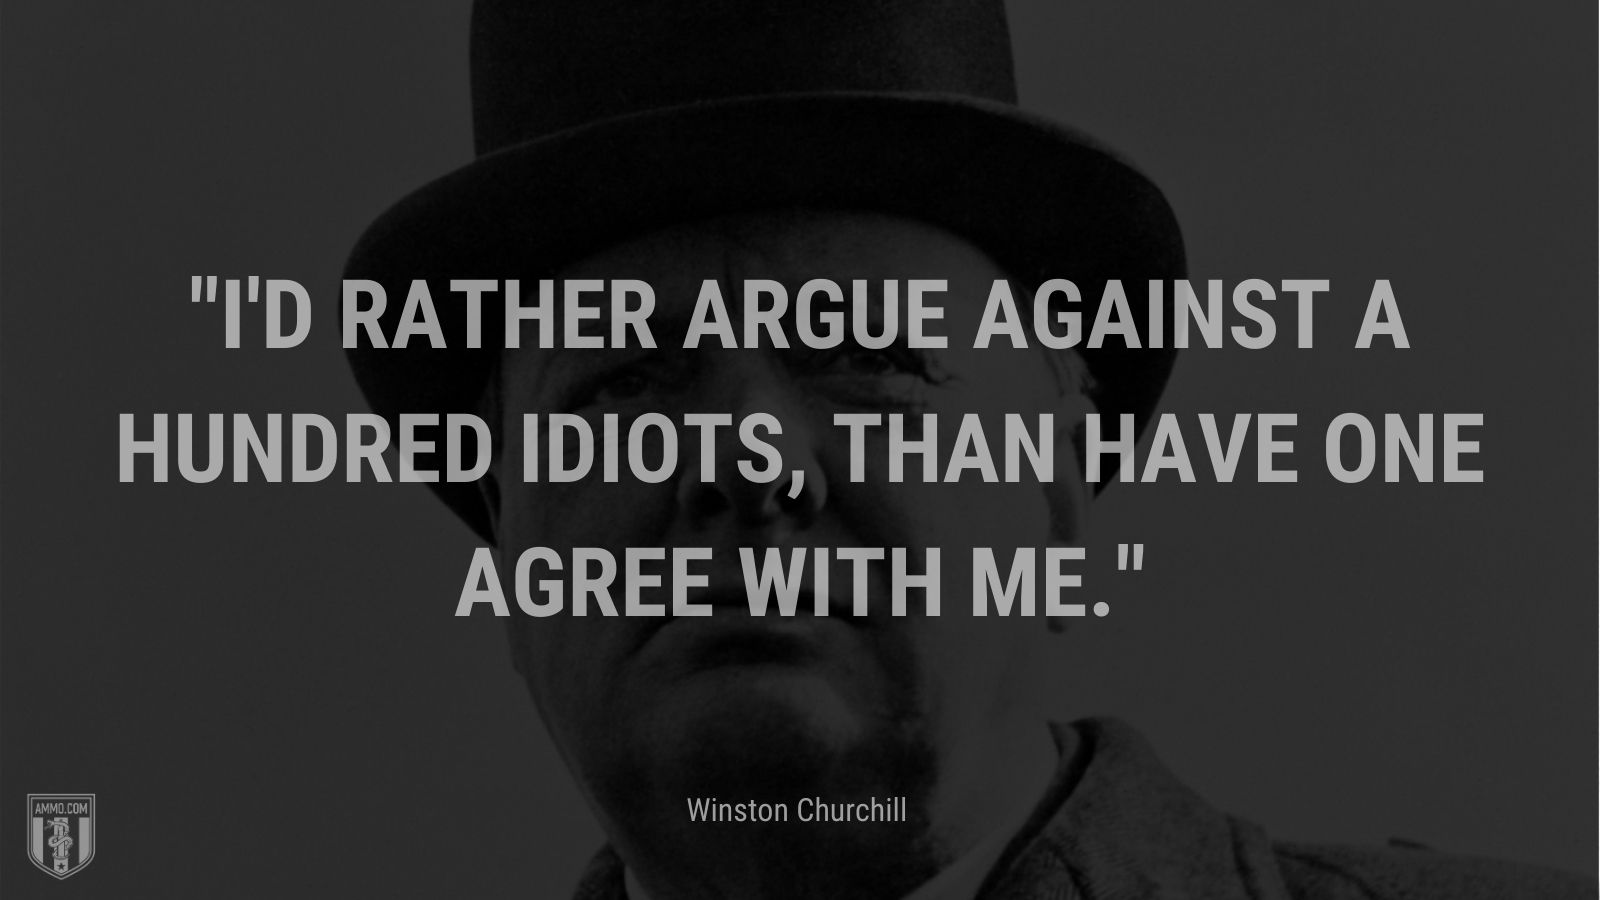 I'd rather argue against a hundred idiots, than have one agree with me.